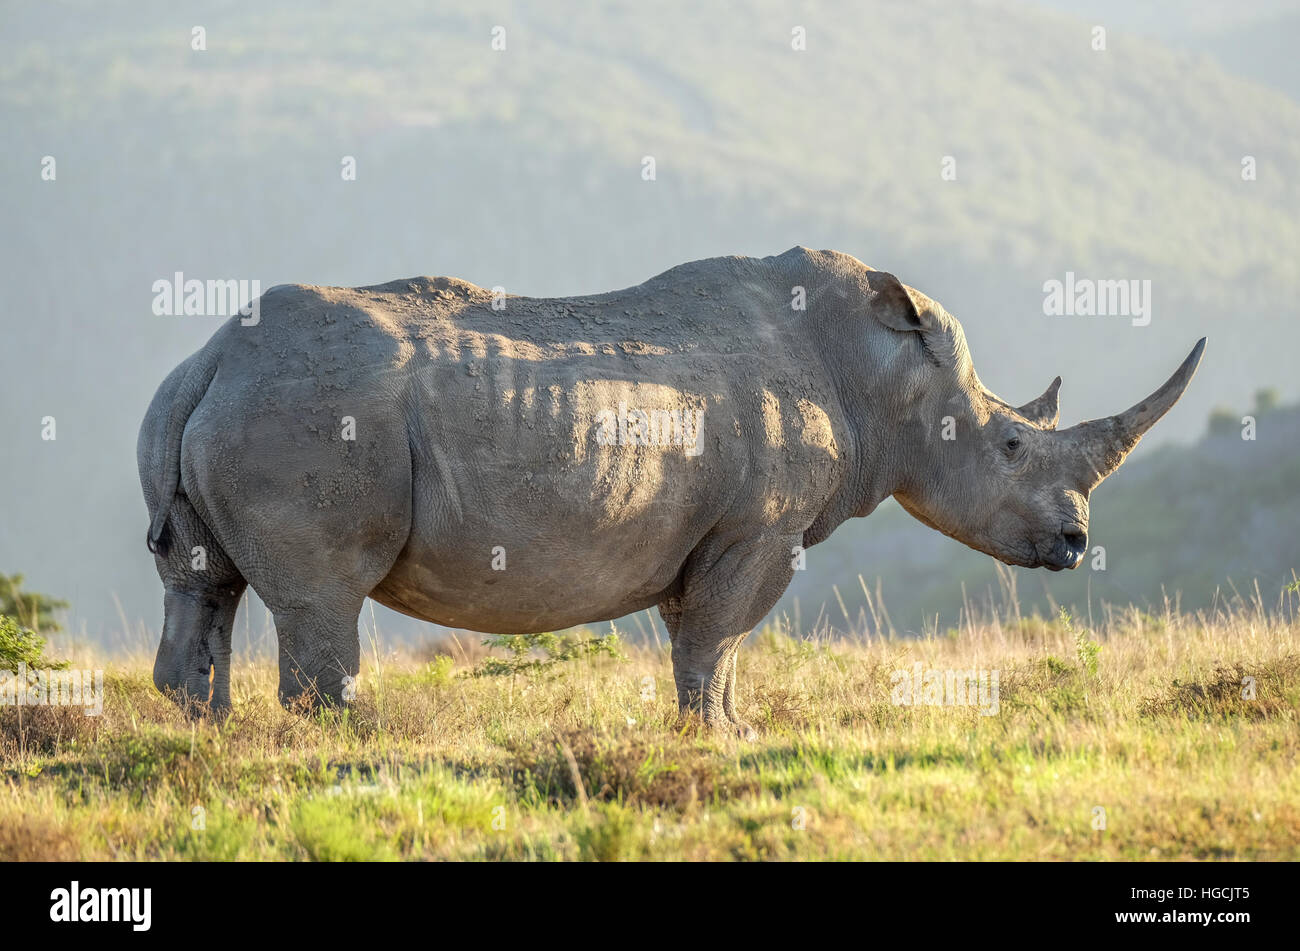 Photo of a white Rhino in the wild on an African plain. Stock Photo